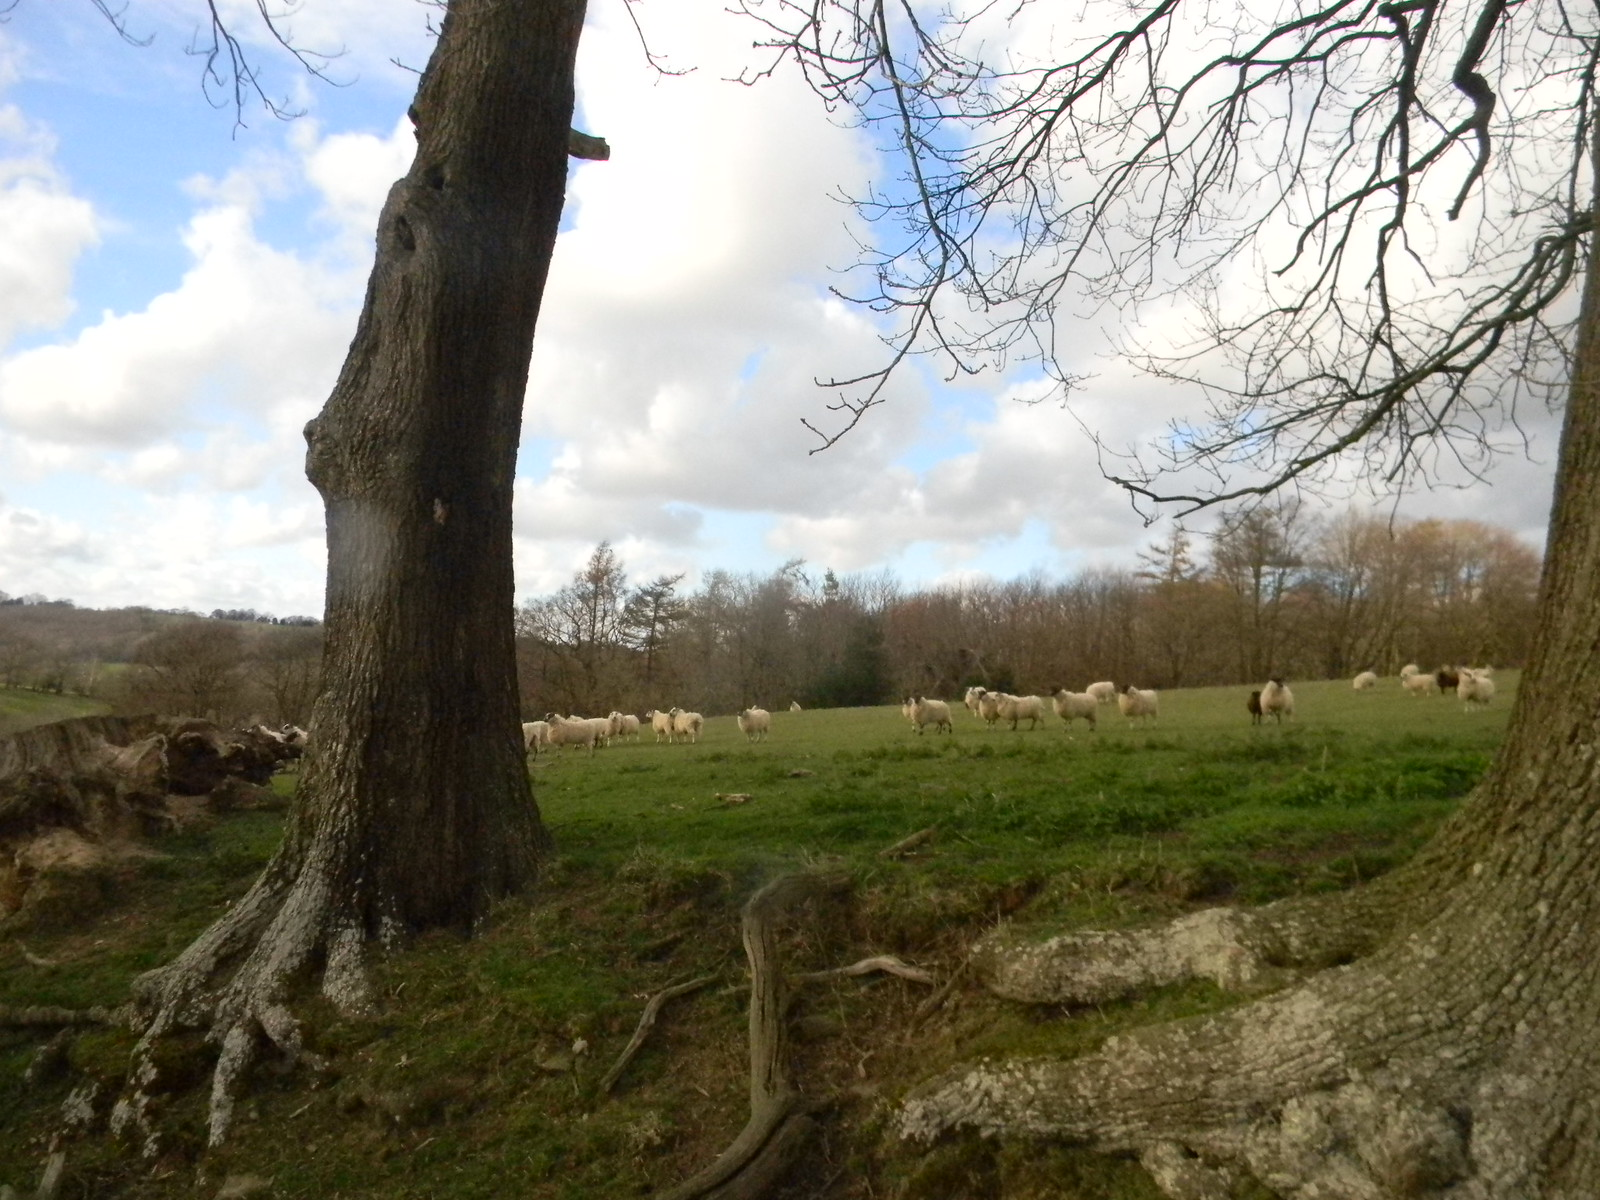 Sheepies Etchingham to Wadhurst